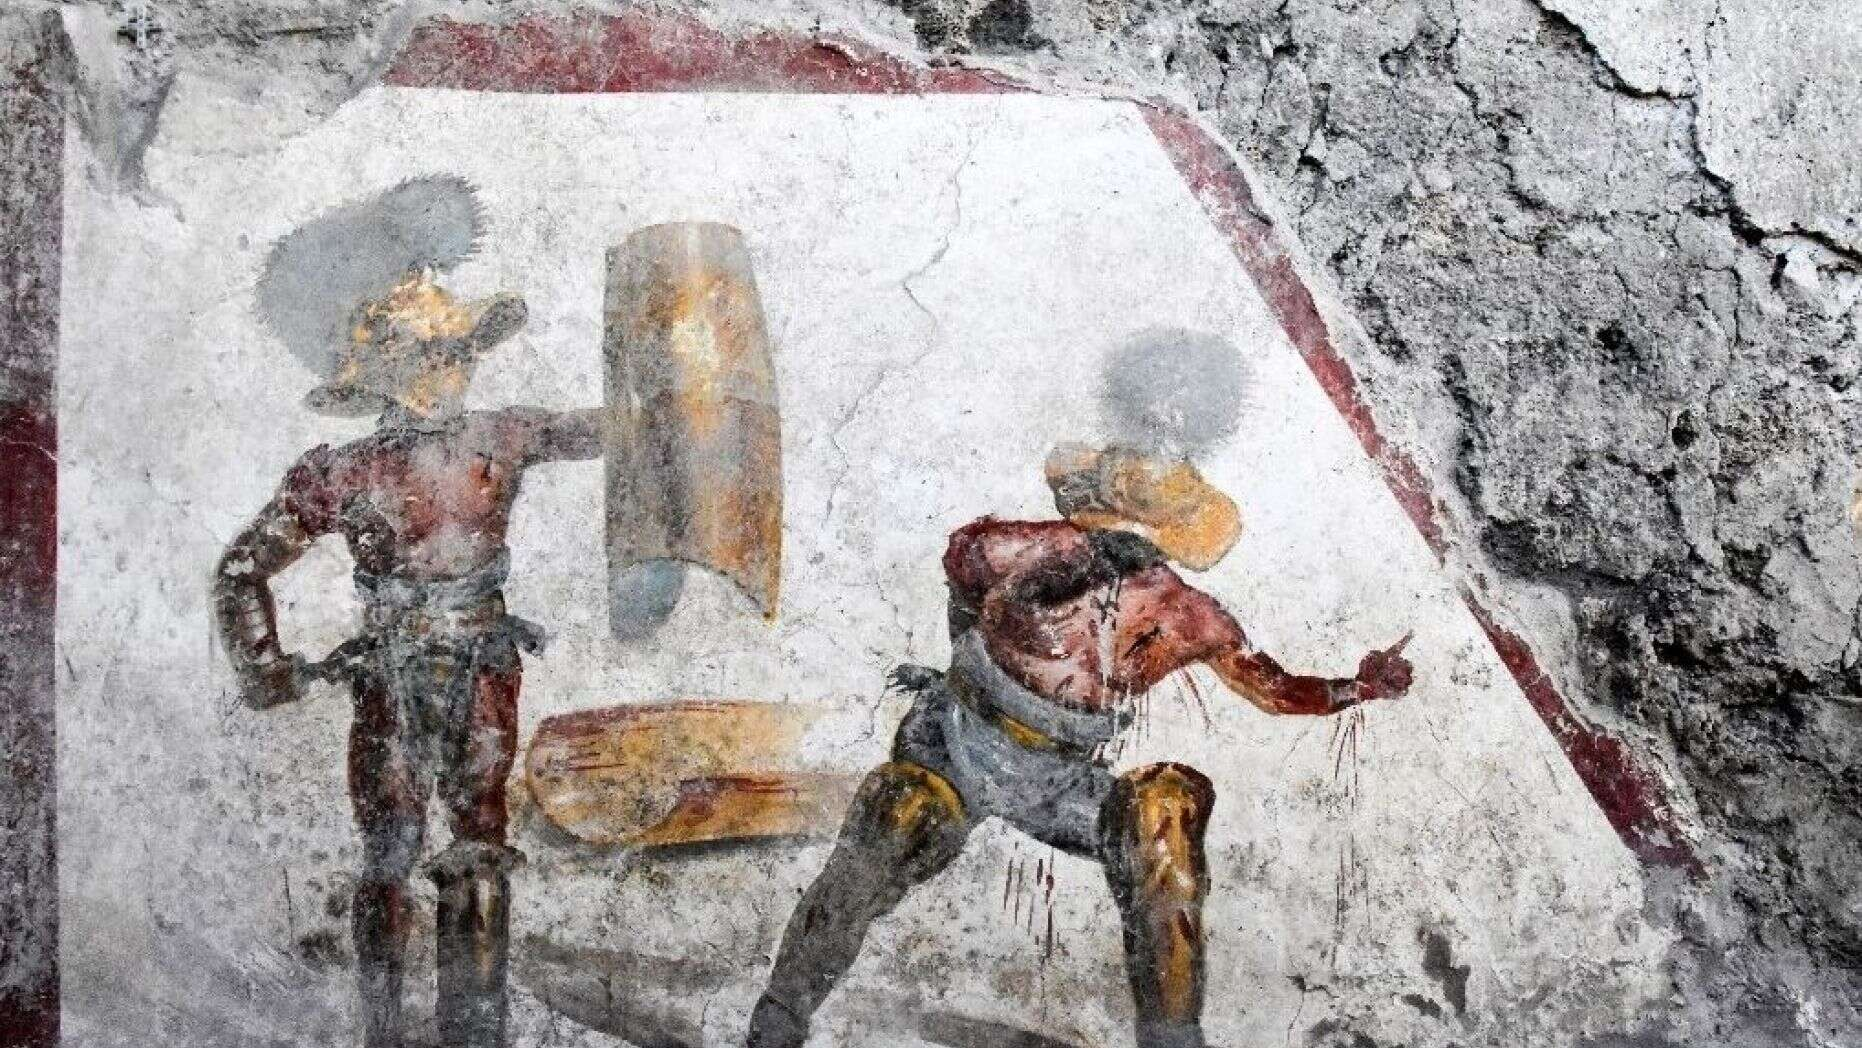 PRESS OFFICE OF THE POMPEI ARCHAEOLOGICAL PARK / AFP